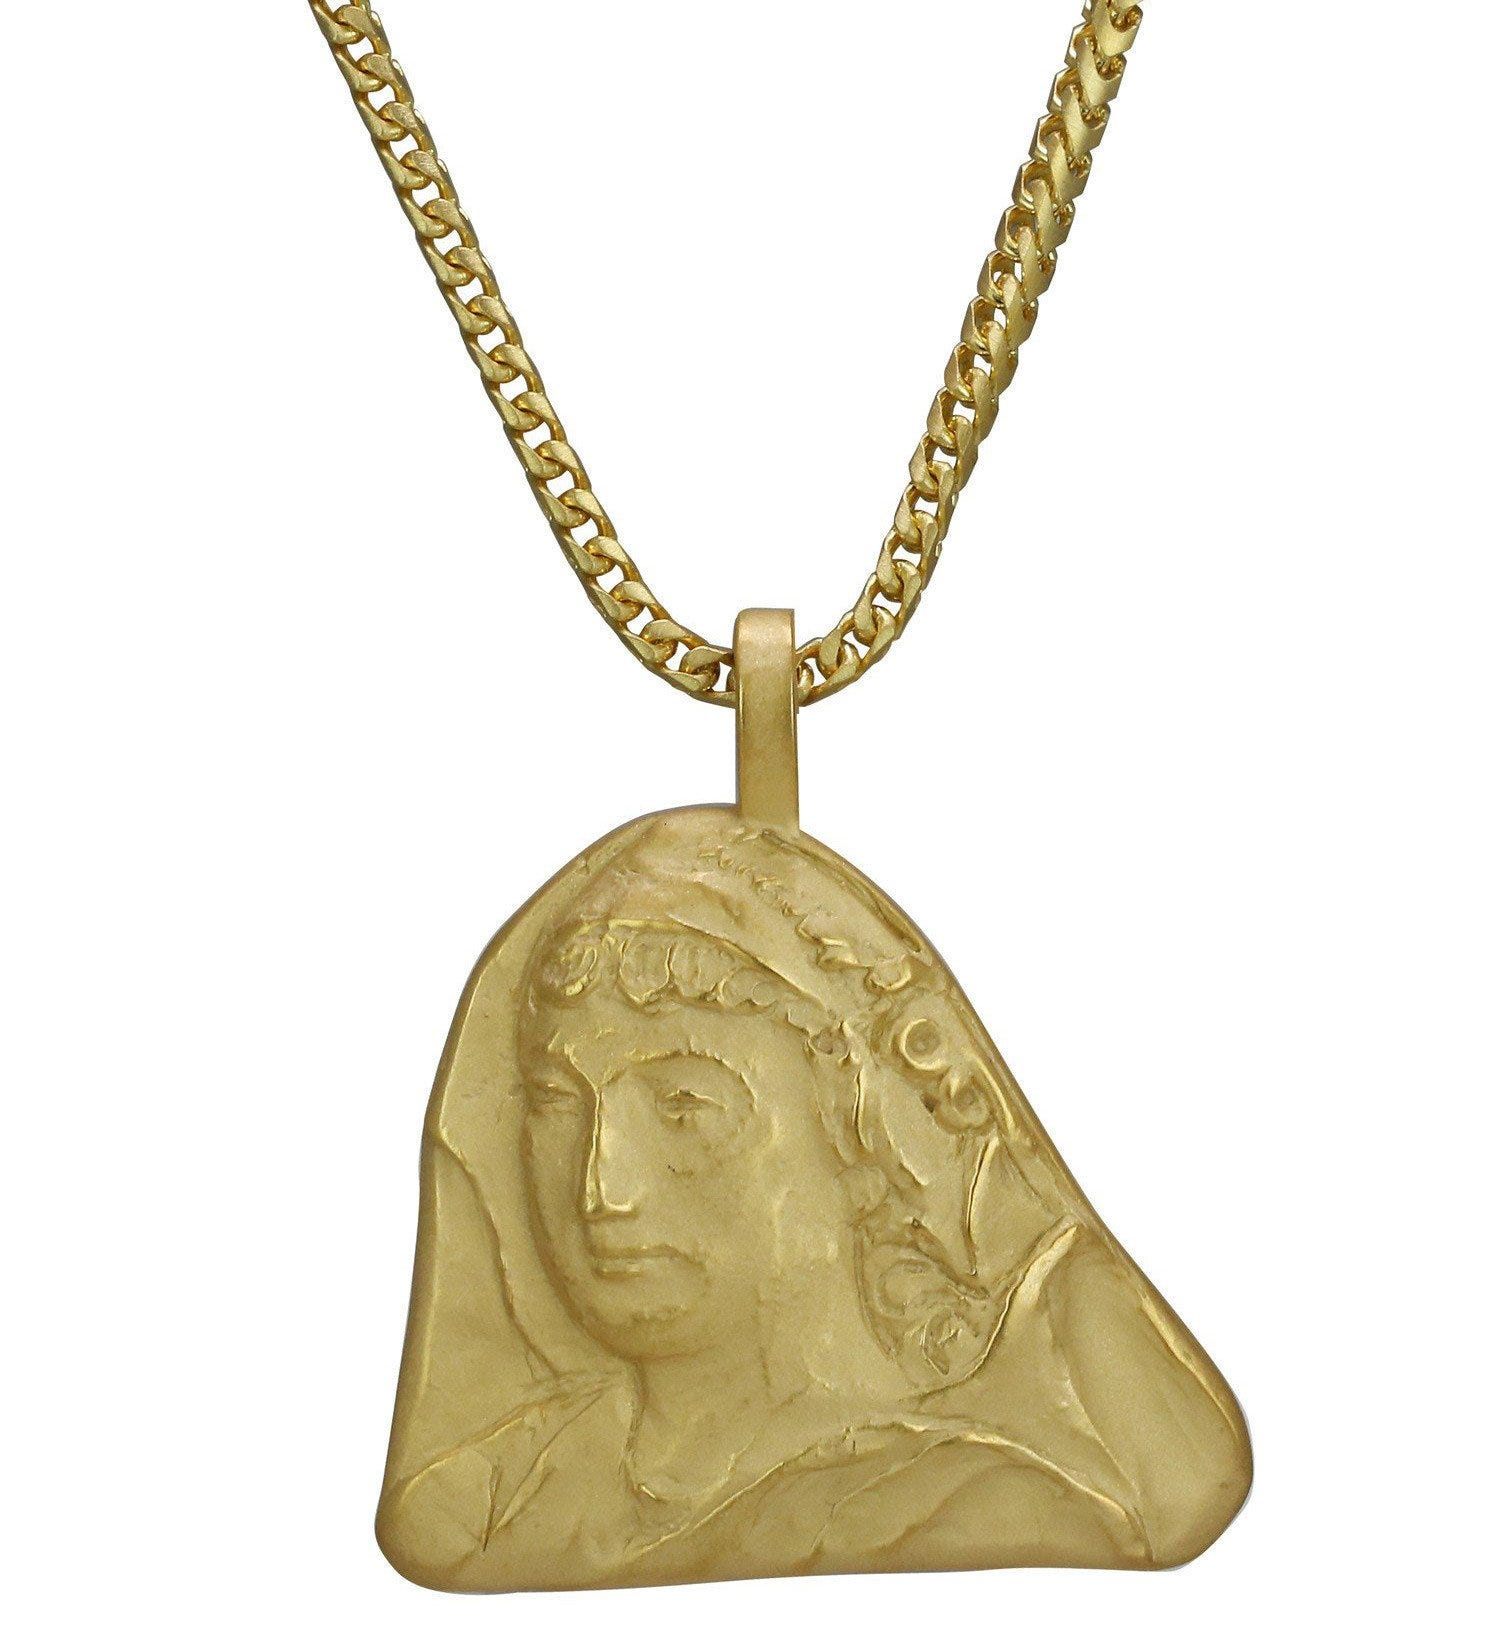 jewelry metallic cc textured chanel in gallery gold pendant lyst medallion chain necklace